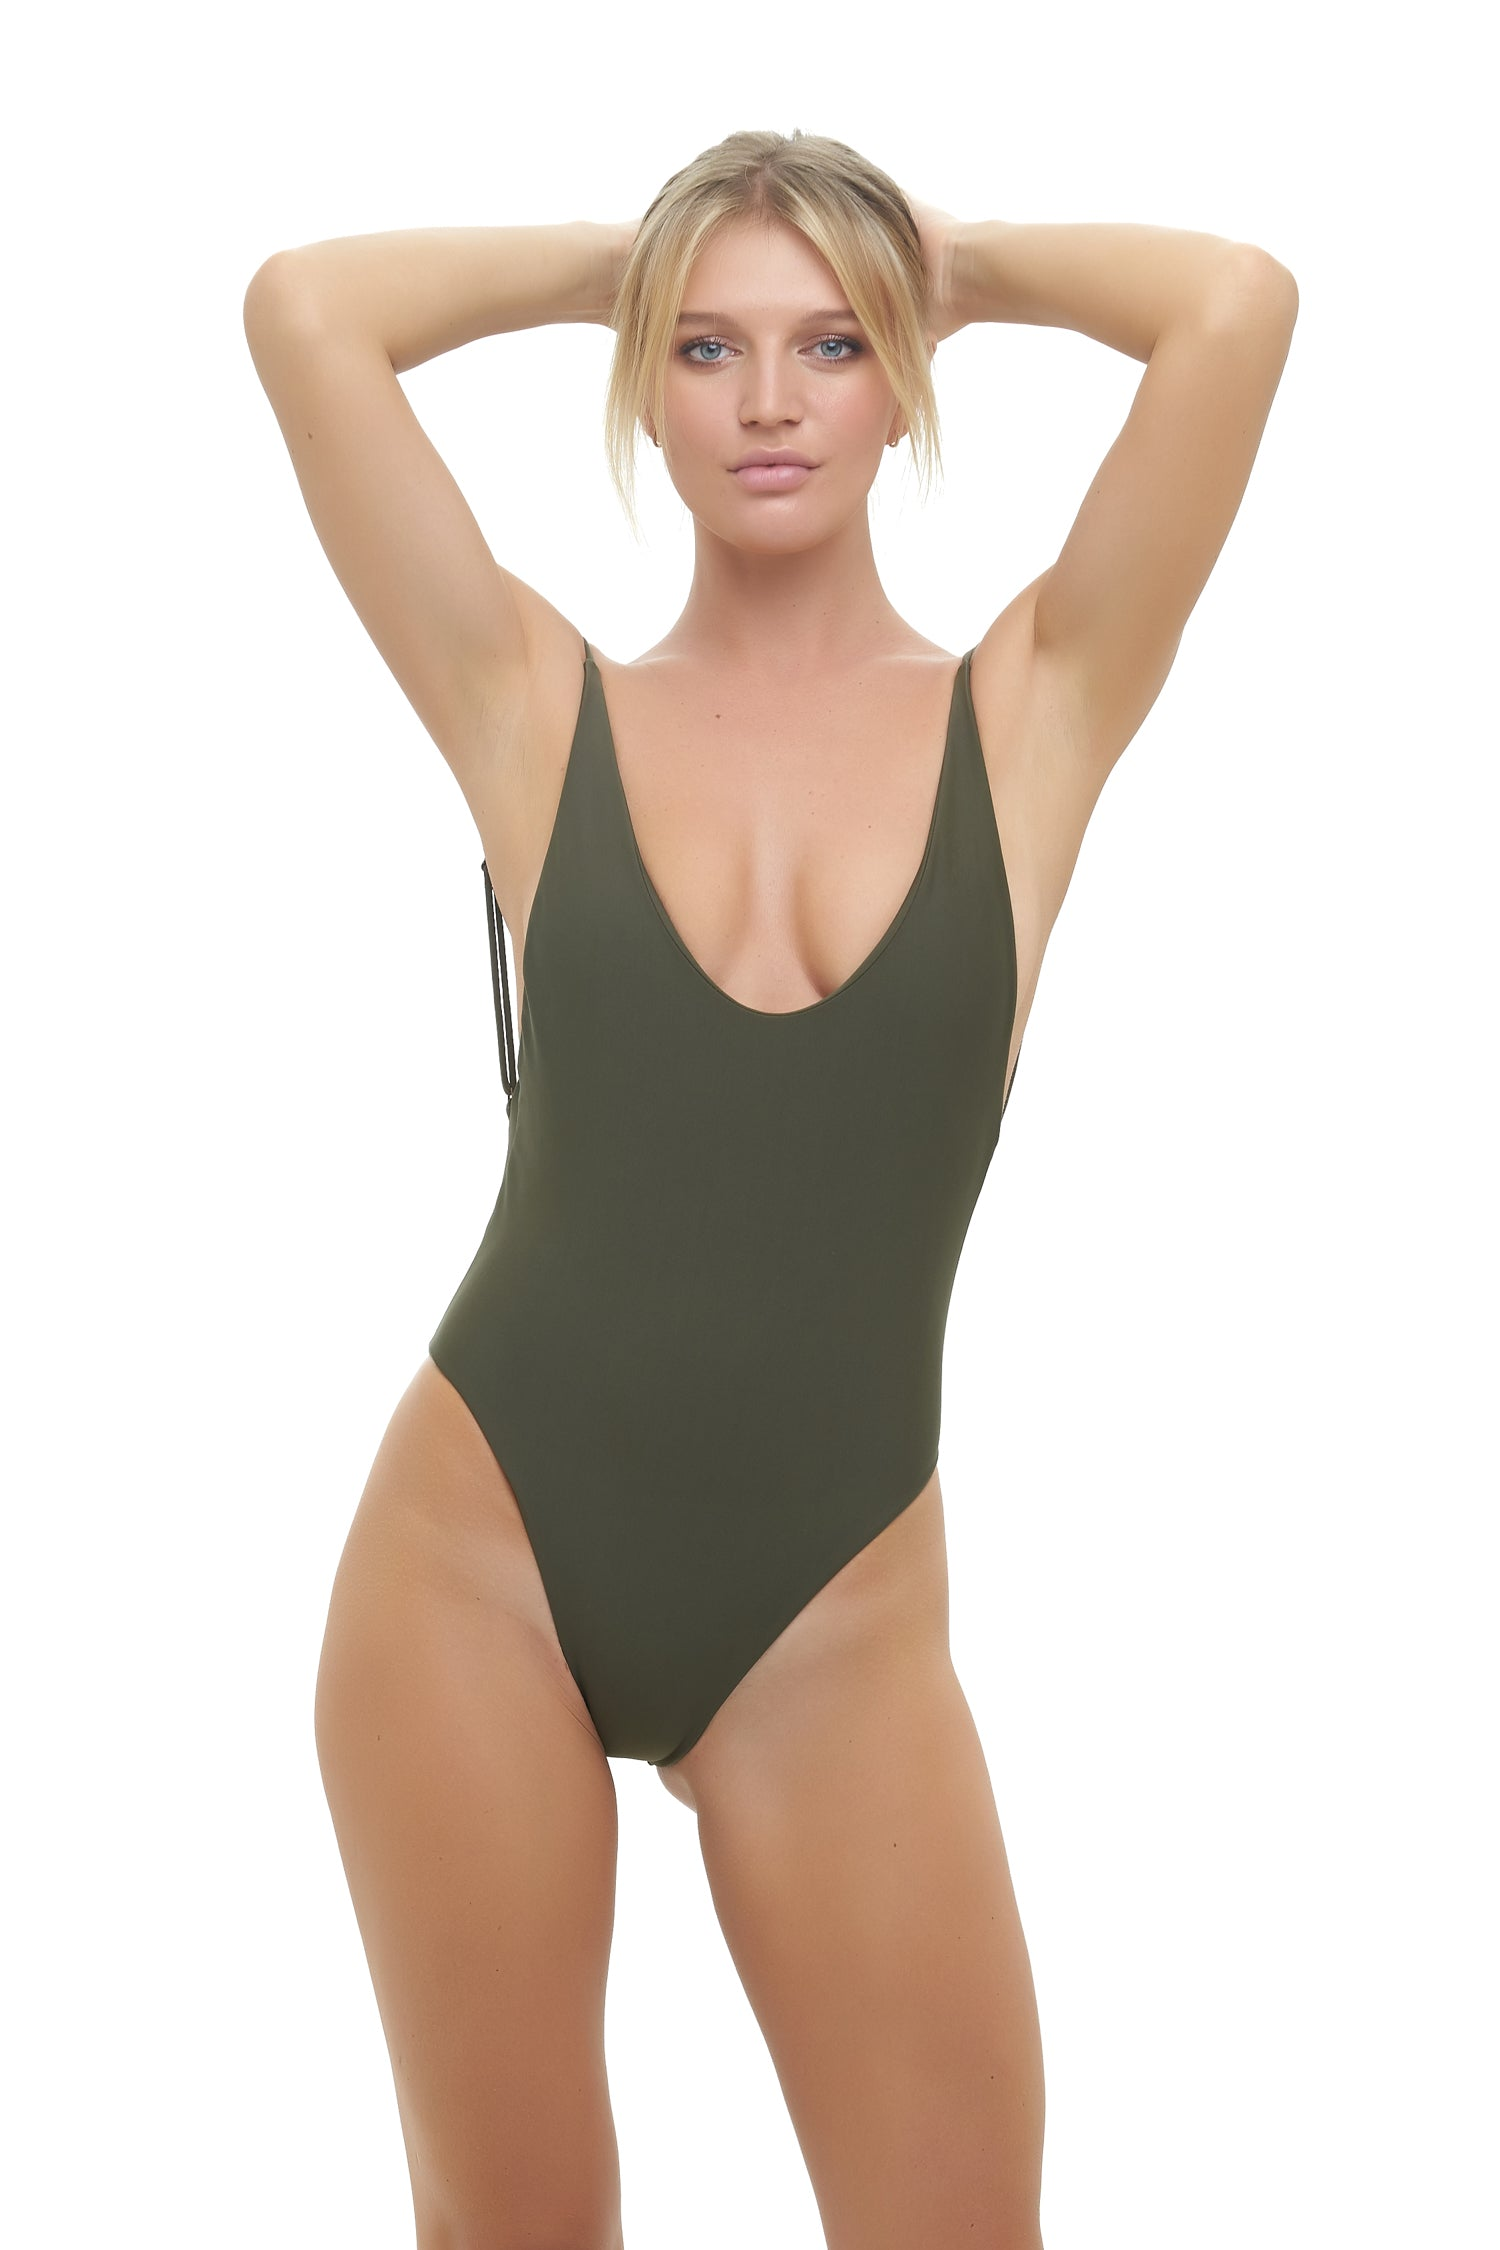 Storm Swimwear - Byron Bay - One Piece Swimsuit in Military Green